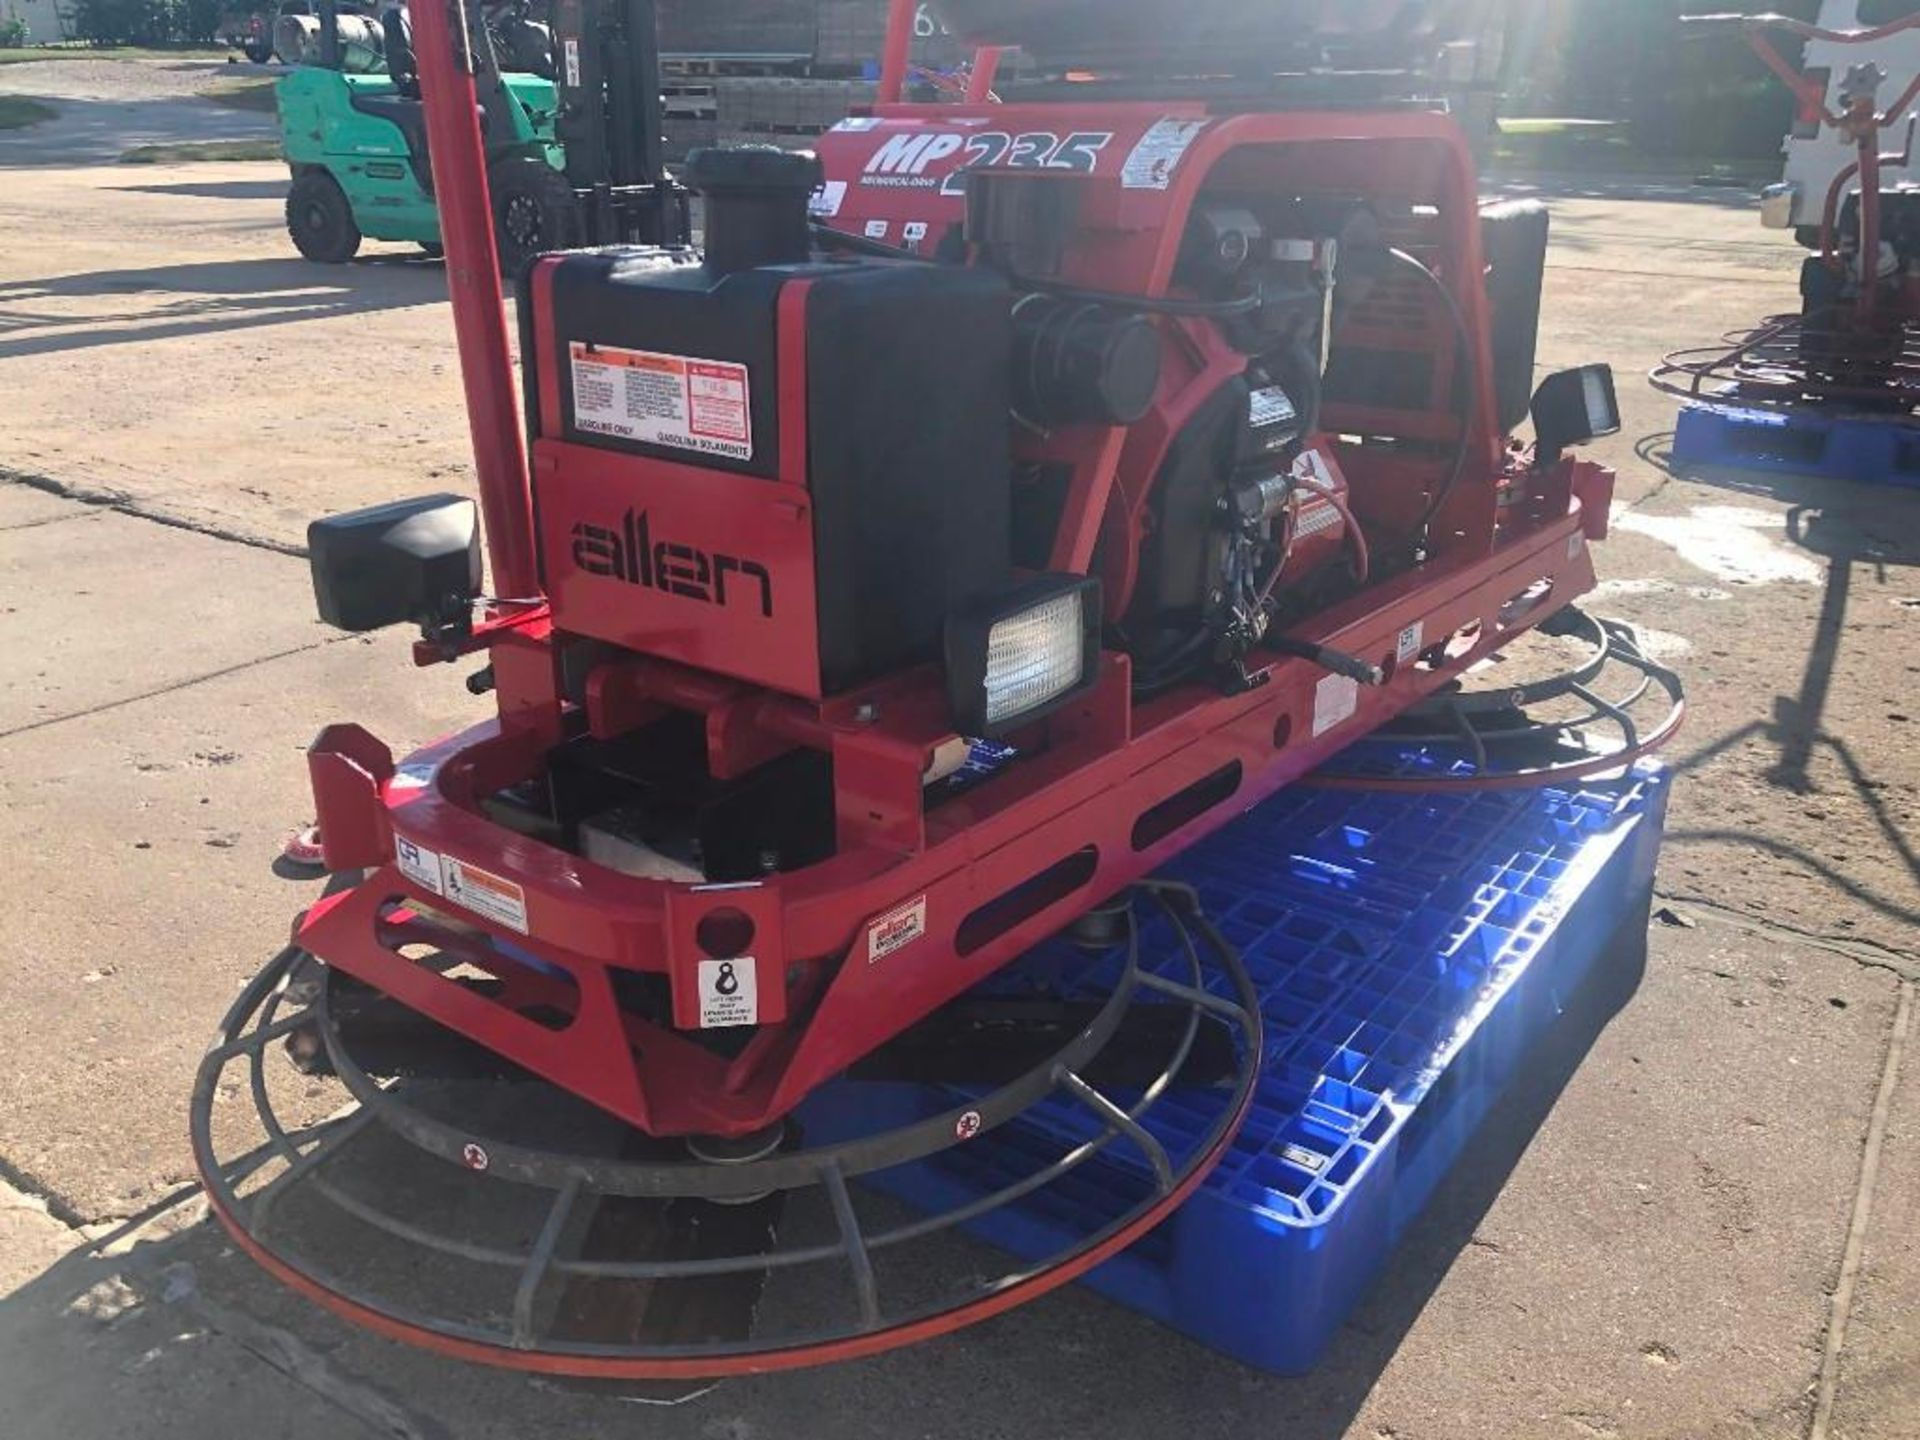 Allen MP235 Edger Riding Trowel, Serial #2350114005, 36.7 Hours, Model MP235. Located at 301 E Henry - Image 3 of 10